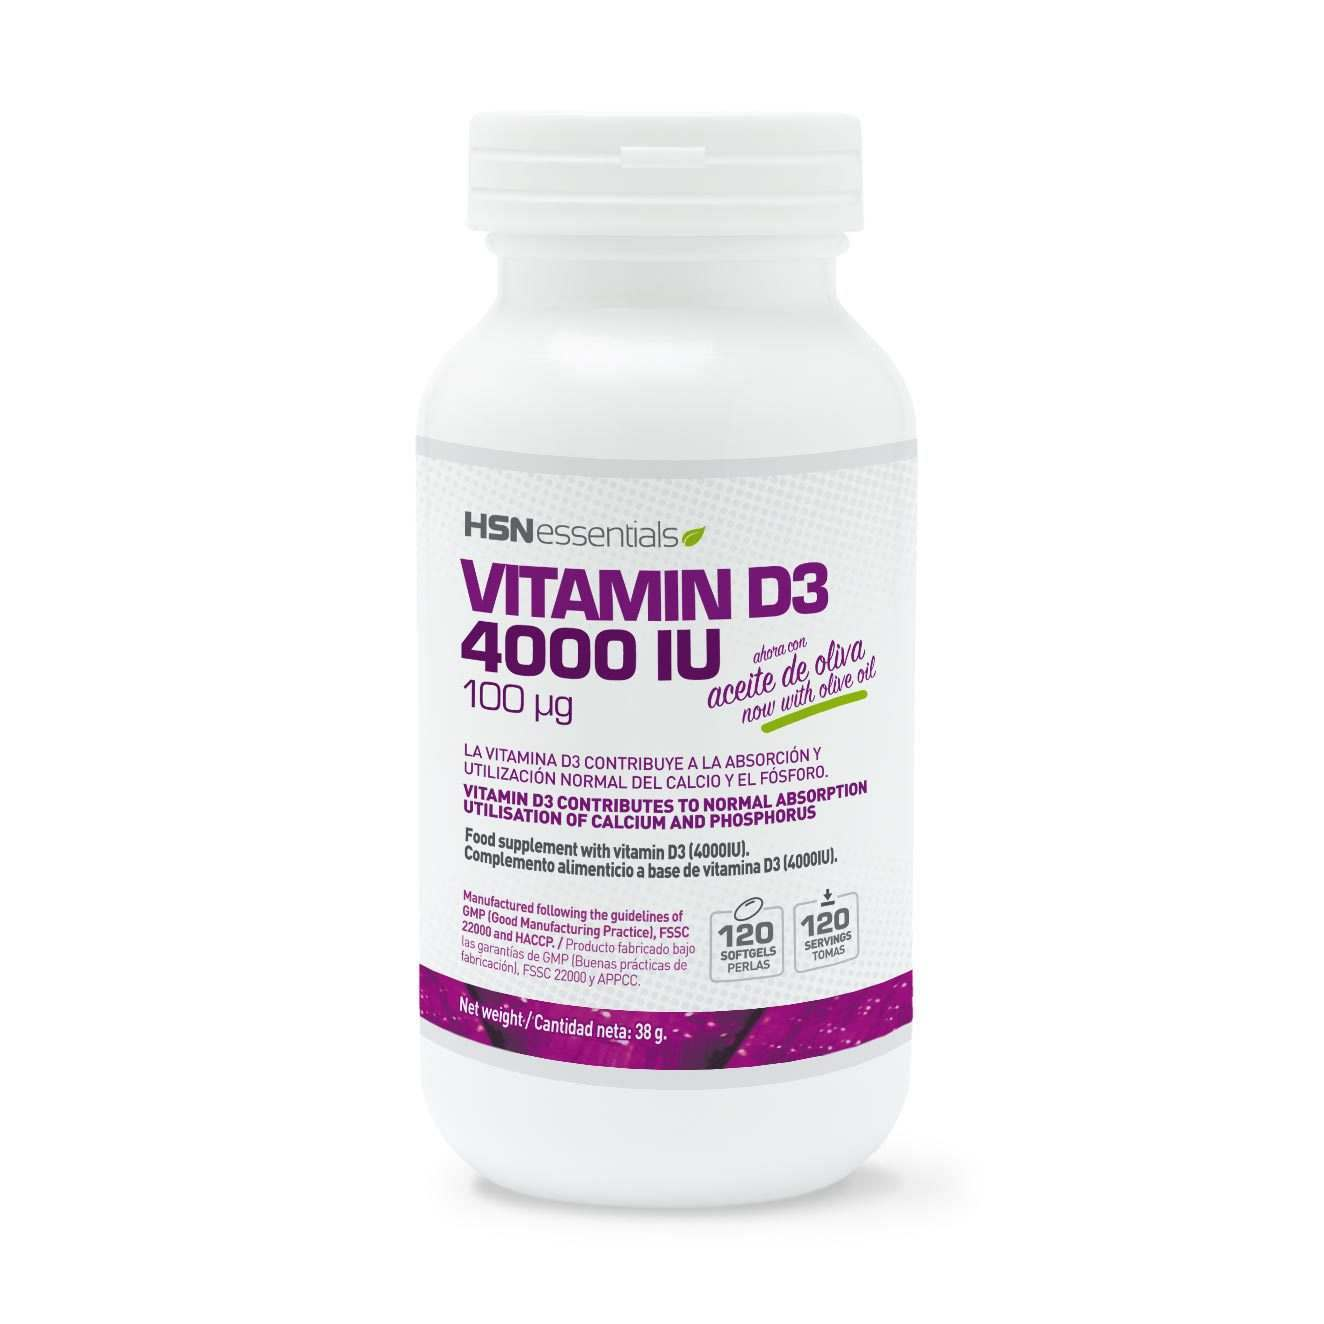 VITAMINE D3 4000IU - 120 softgels